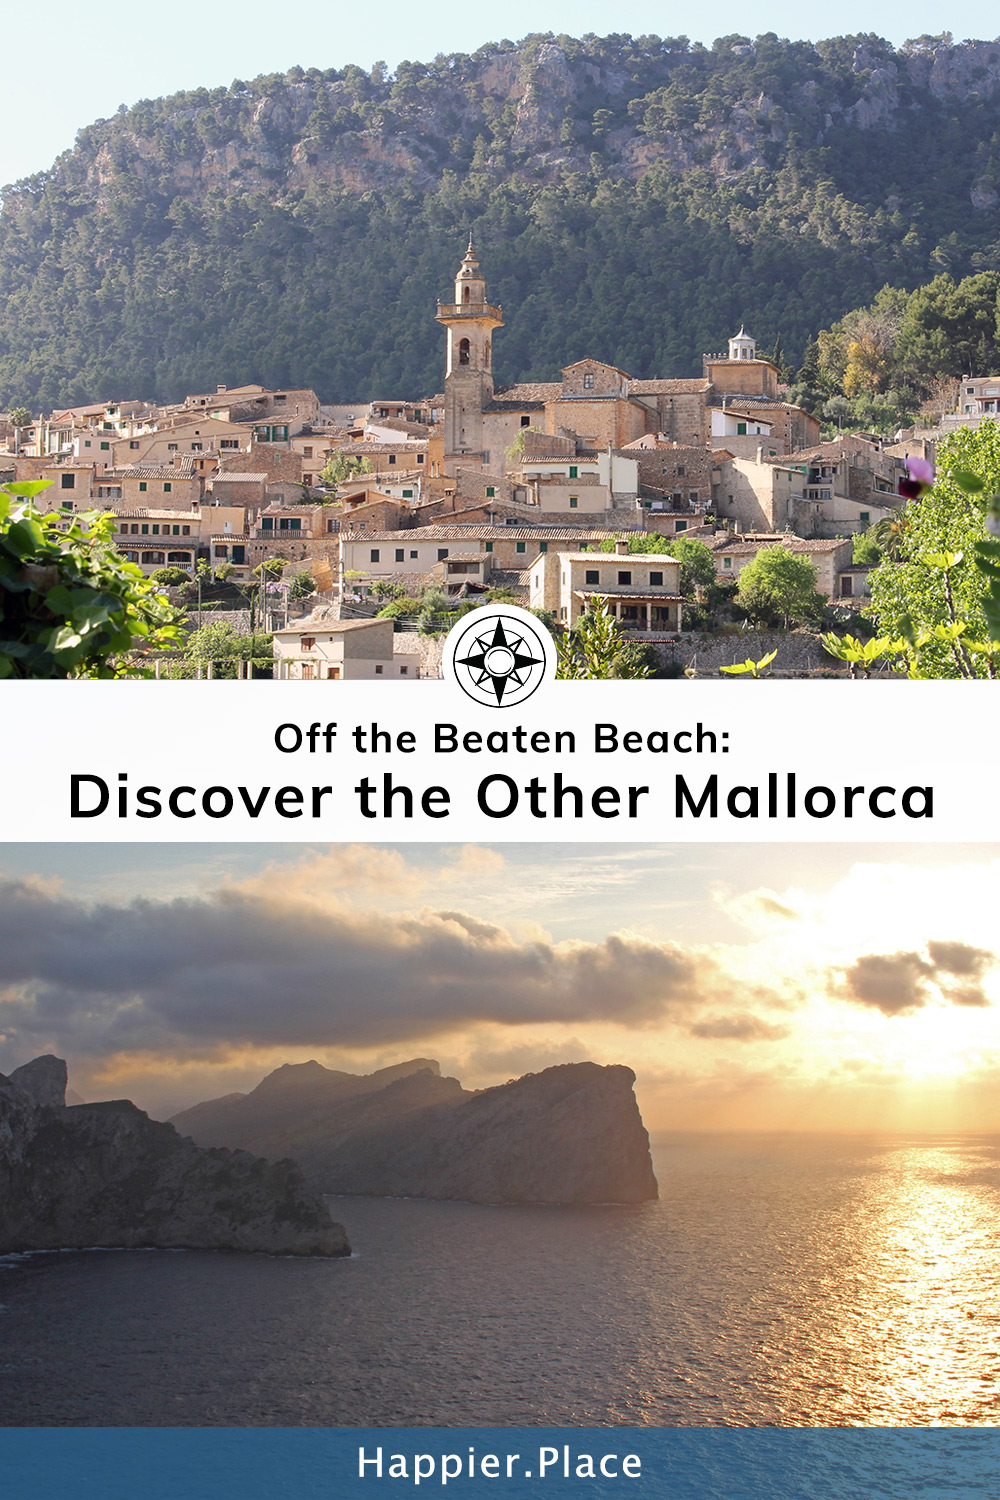 Off the Beaten Beach: Discover the Other Mallorca - featuring Valldemossa mountain village and Cap de Formentor sunset.